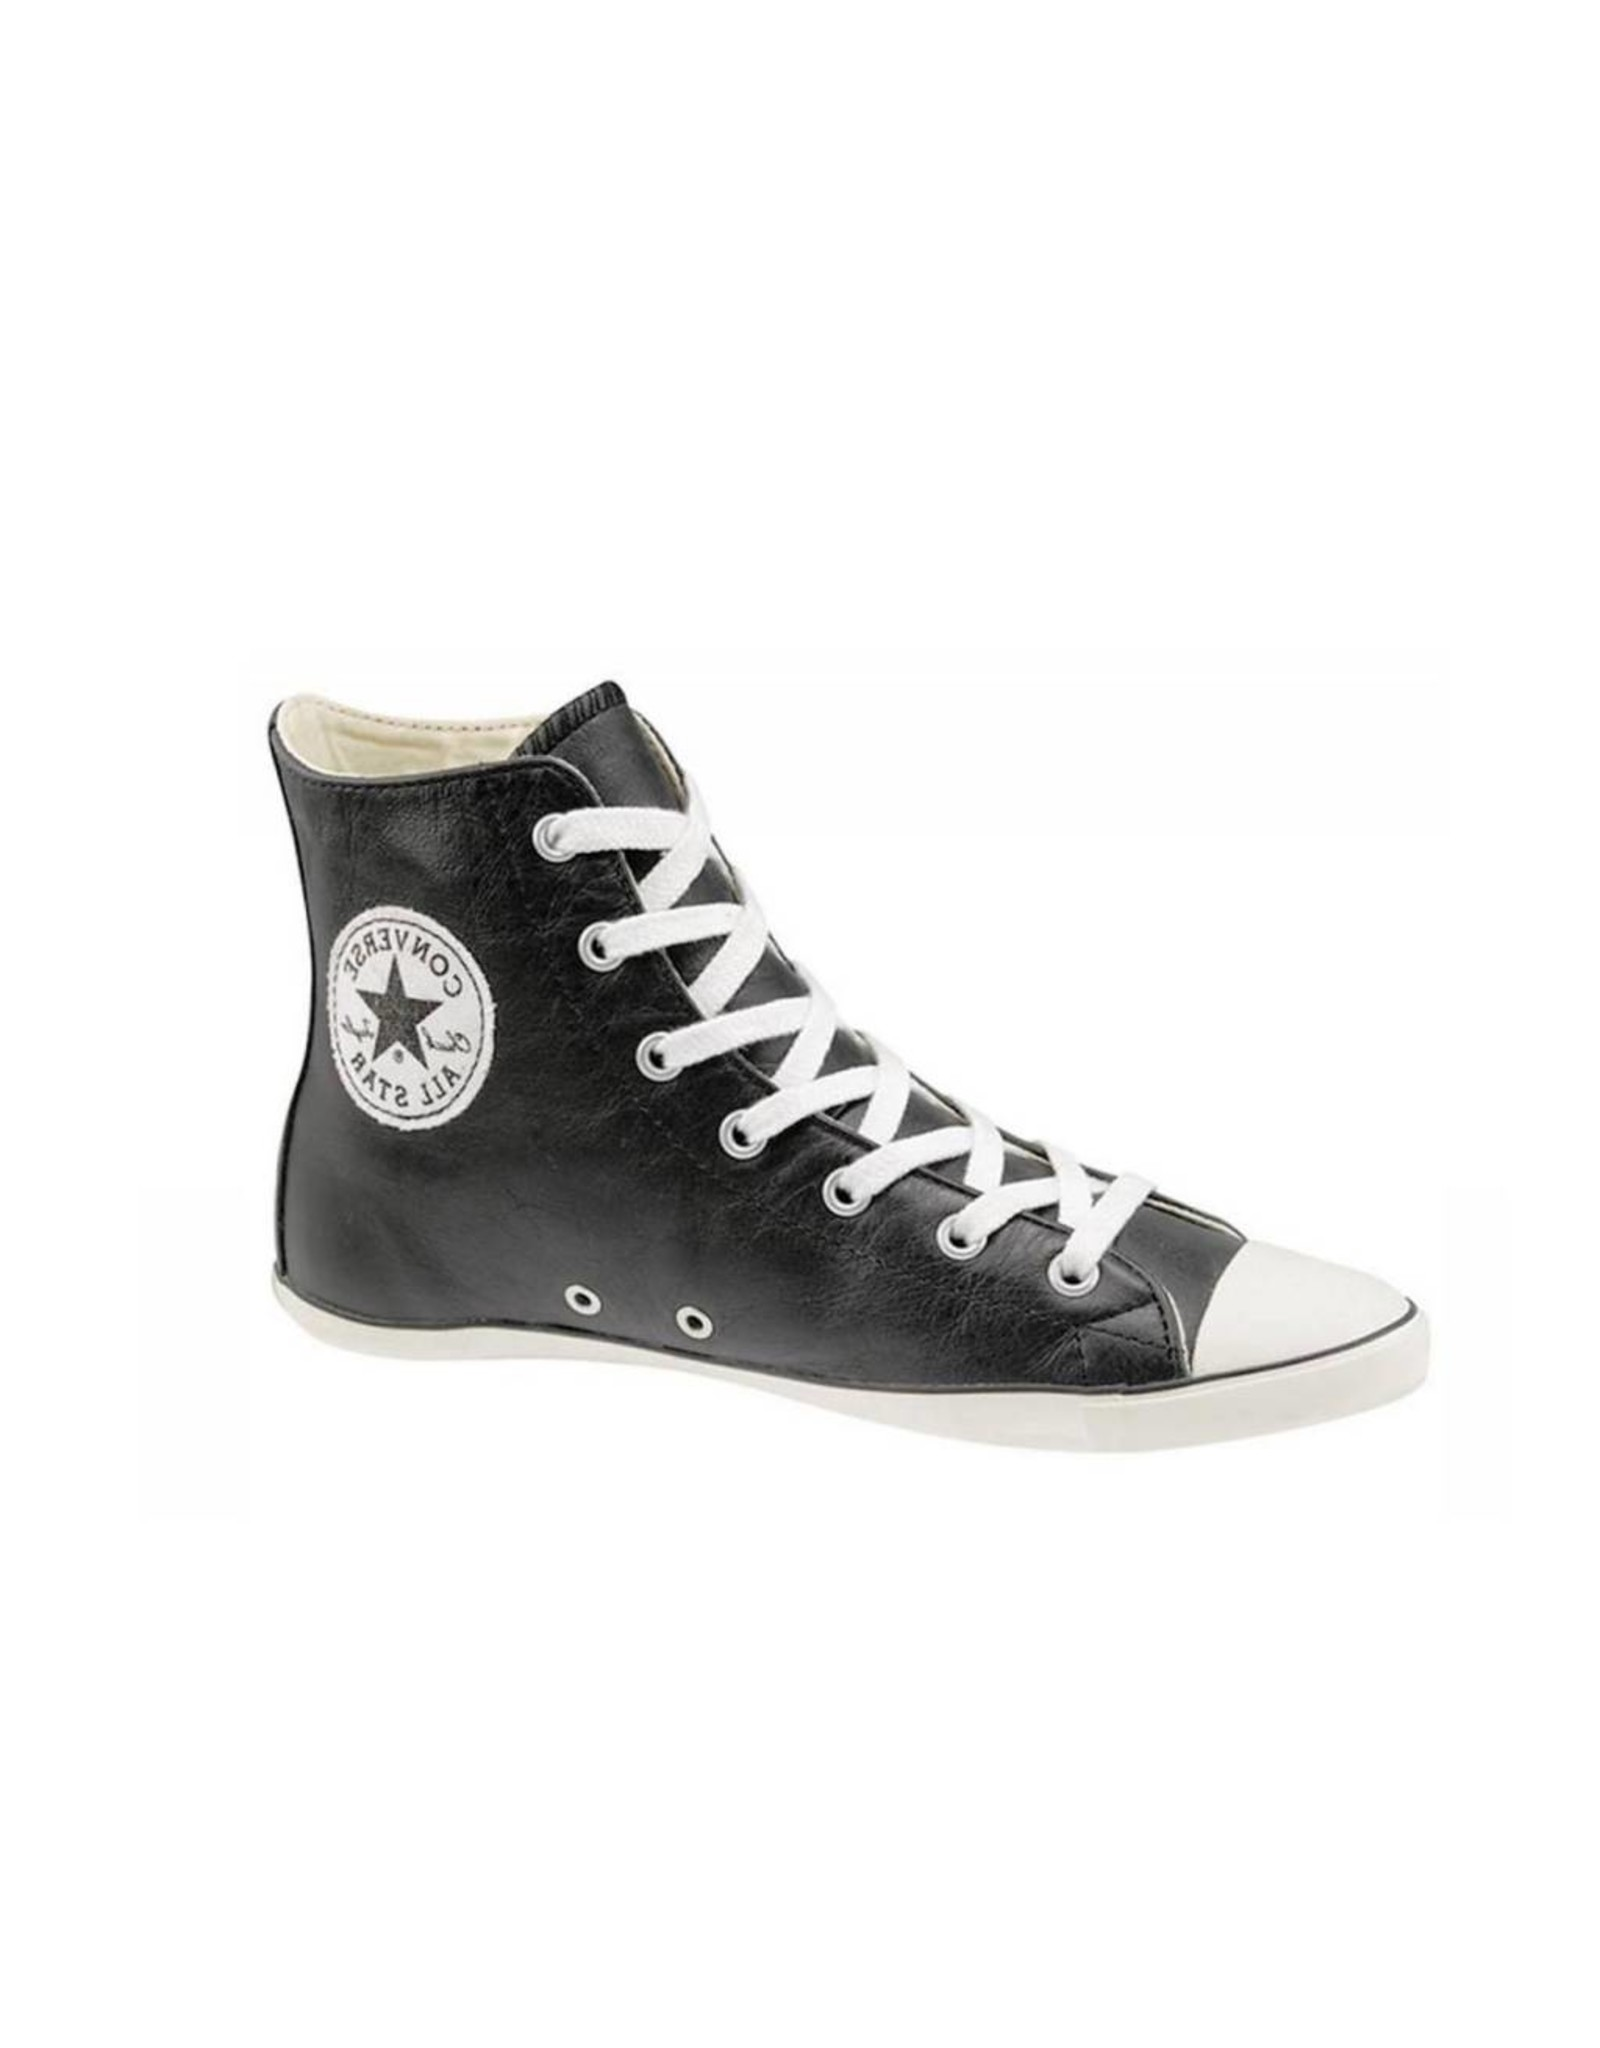 CONVERSE Chuck Taylor All Star LIGHT CUIR HI BLACK CC8LB-505615